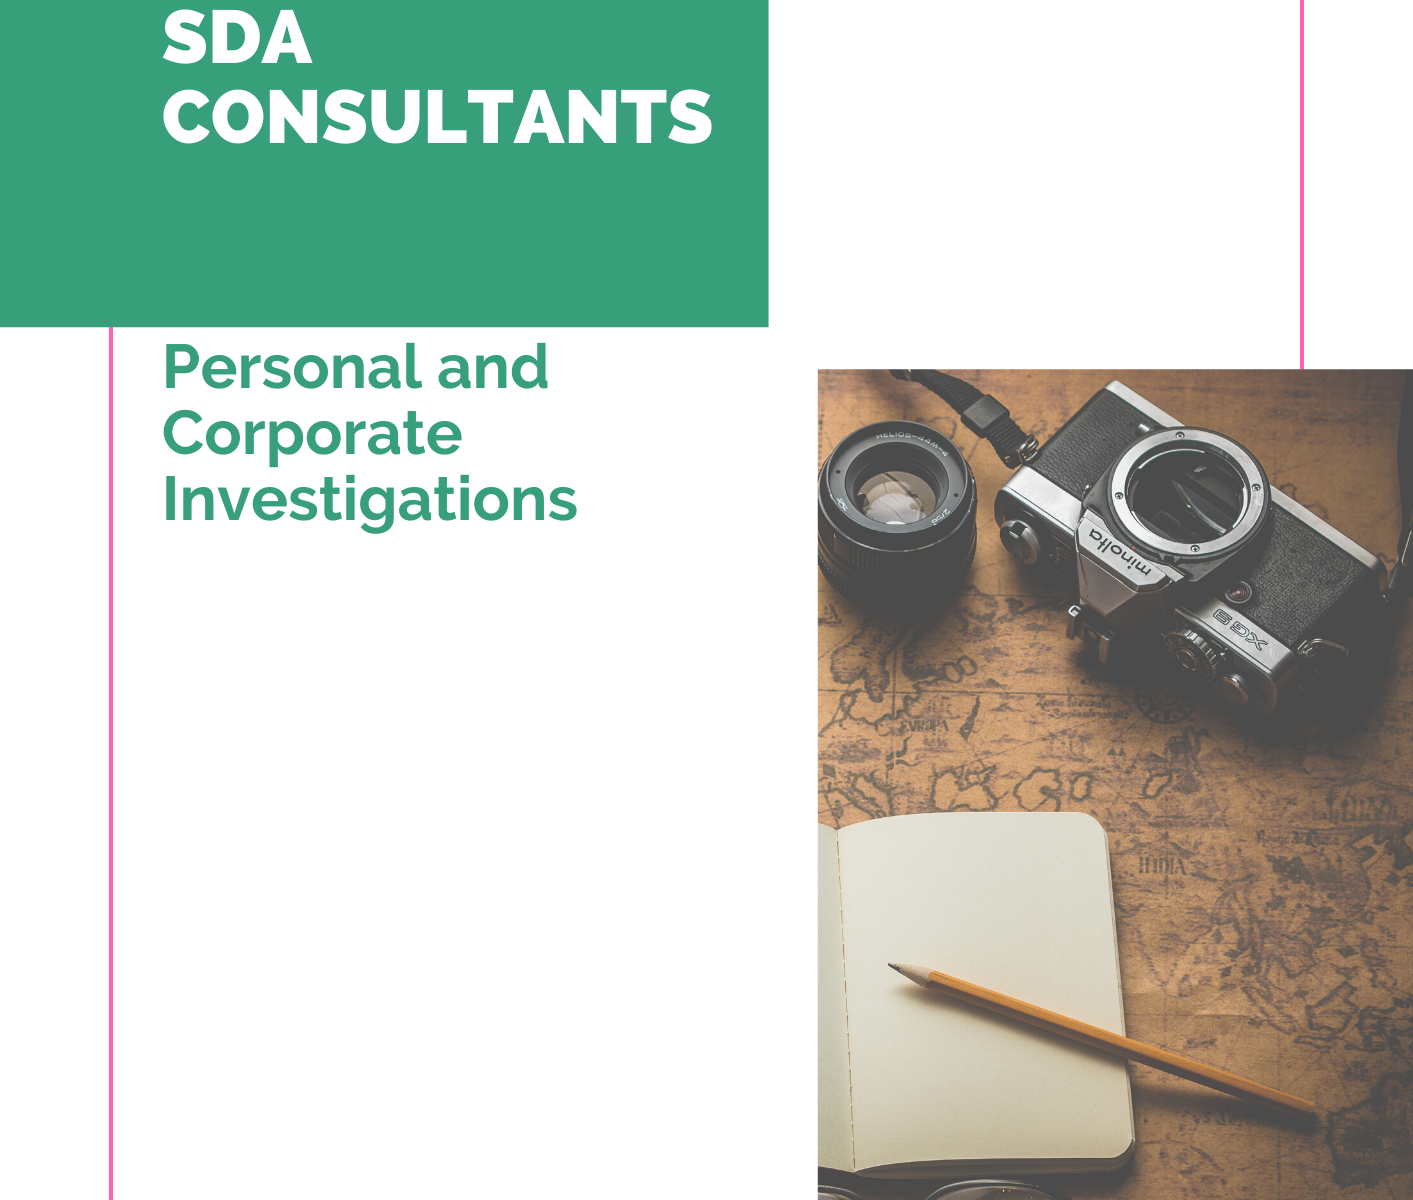 detective services in dubai for matrimonial and corporate investigations